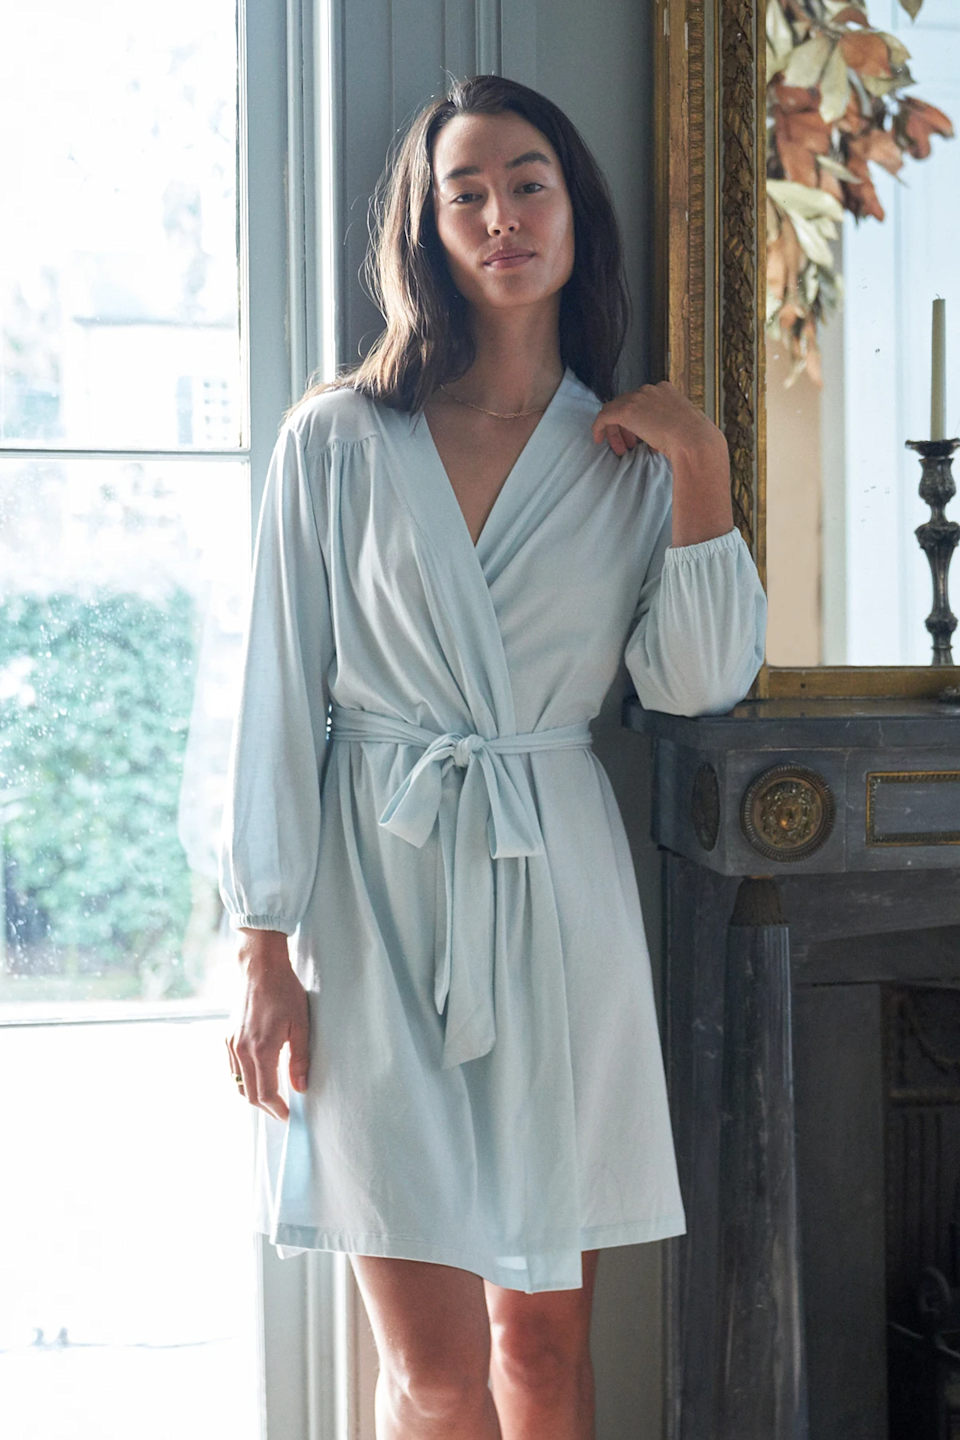 """<h3><h2>Lake DreamKnit Robe</h2></h3><br>This classic robe is made of smooth and stretchy knit and the elastic sleeves add a sweet and timeless finishing touch. <br><br><strong>LAKE</strong> DreamKnit Robe, $, available at <a href=""""https://go.skimresources.com/?id=30283X879131&url=https%3A%2F%2Flakepajamas.com%2Fcollections%2Frobes%2Fproducts%2Fcoastal-blue-dreamknit-robe"""" rel=""""nofollow noopener"""" target=""""_blank"""" data-ylk=""""slk:LAKE"""" class=""""link rapid-noclick-resp"""">LAKE</a>"""